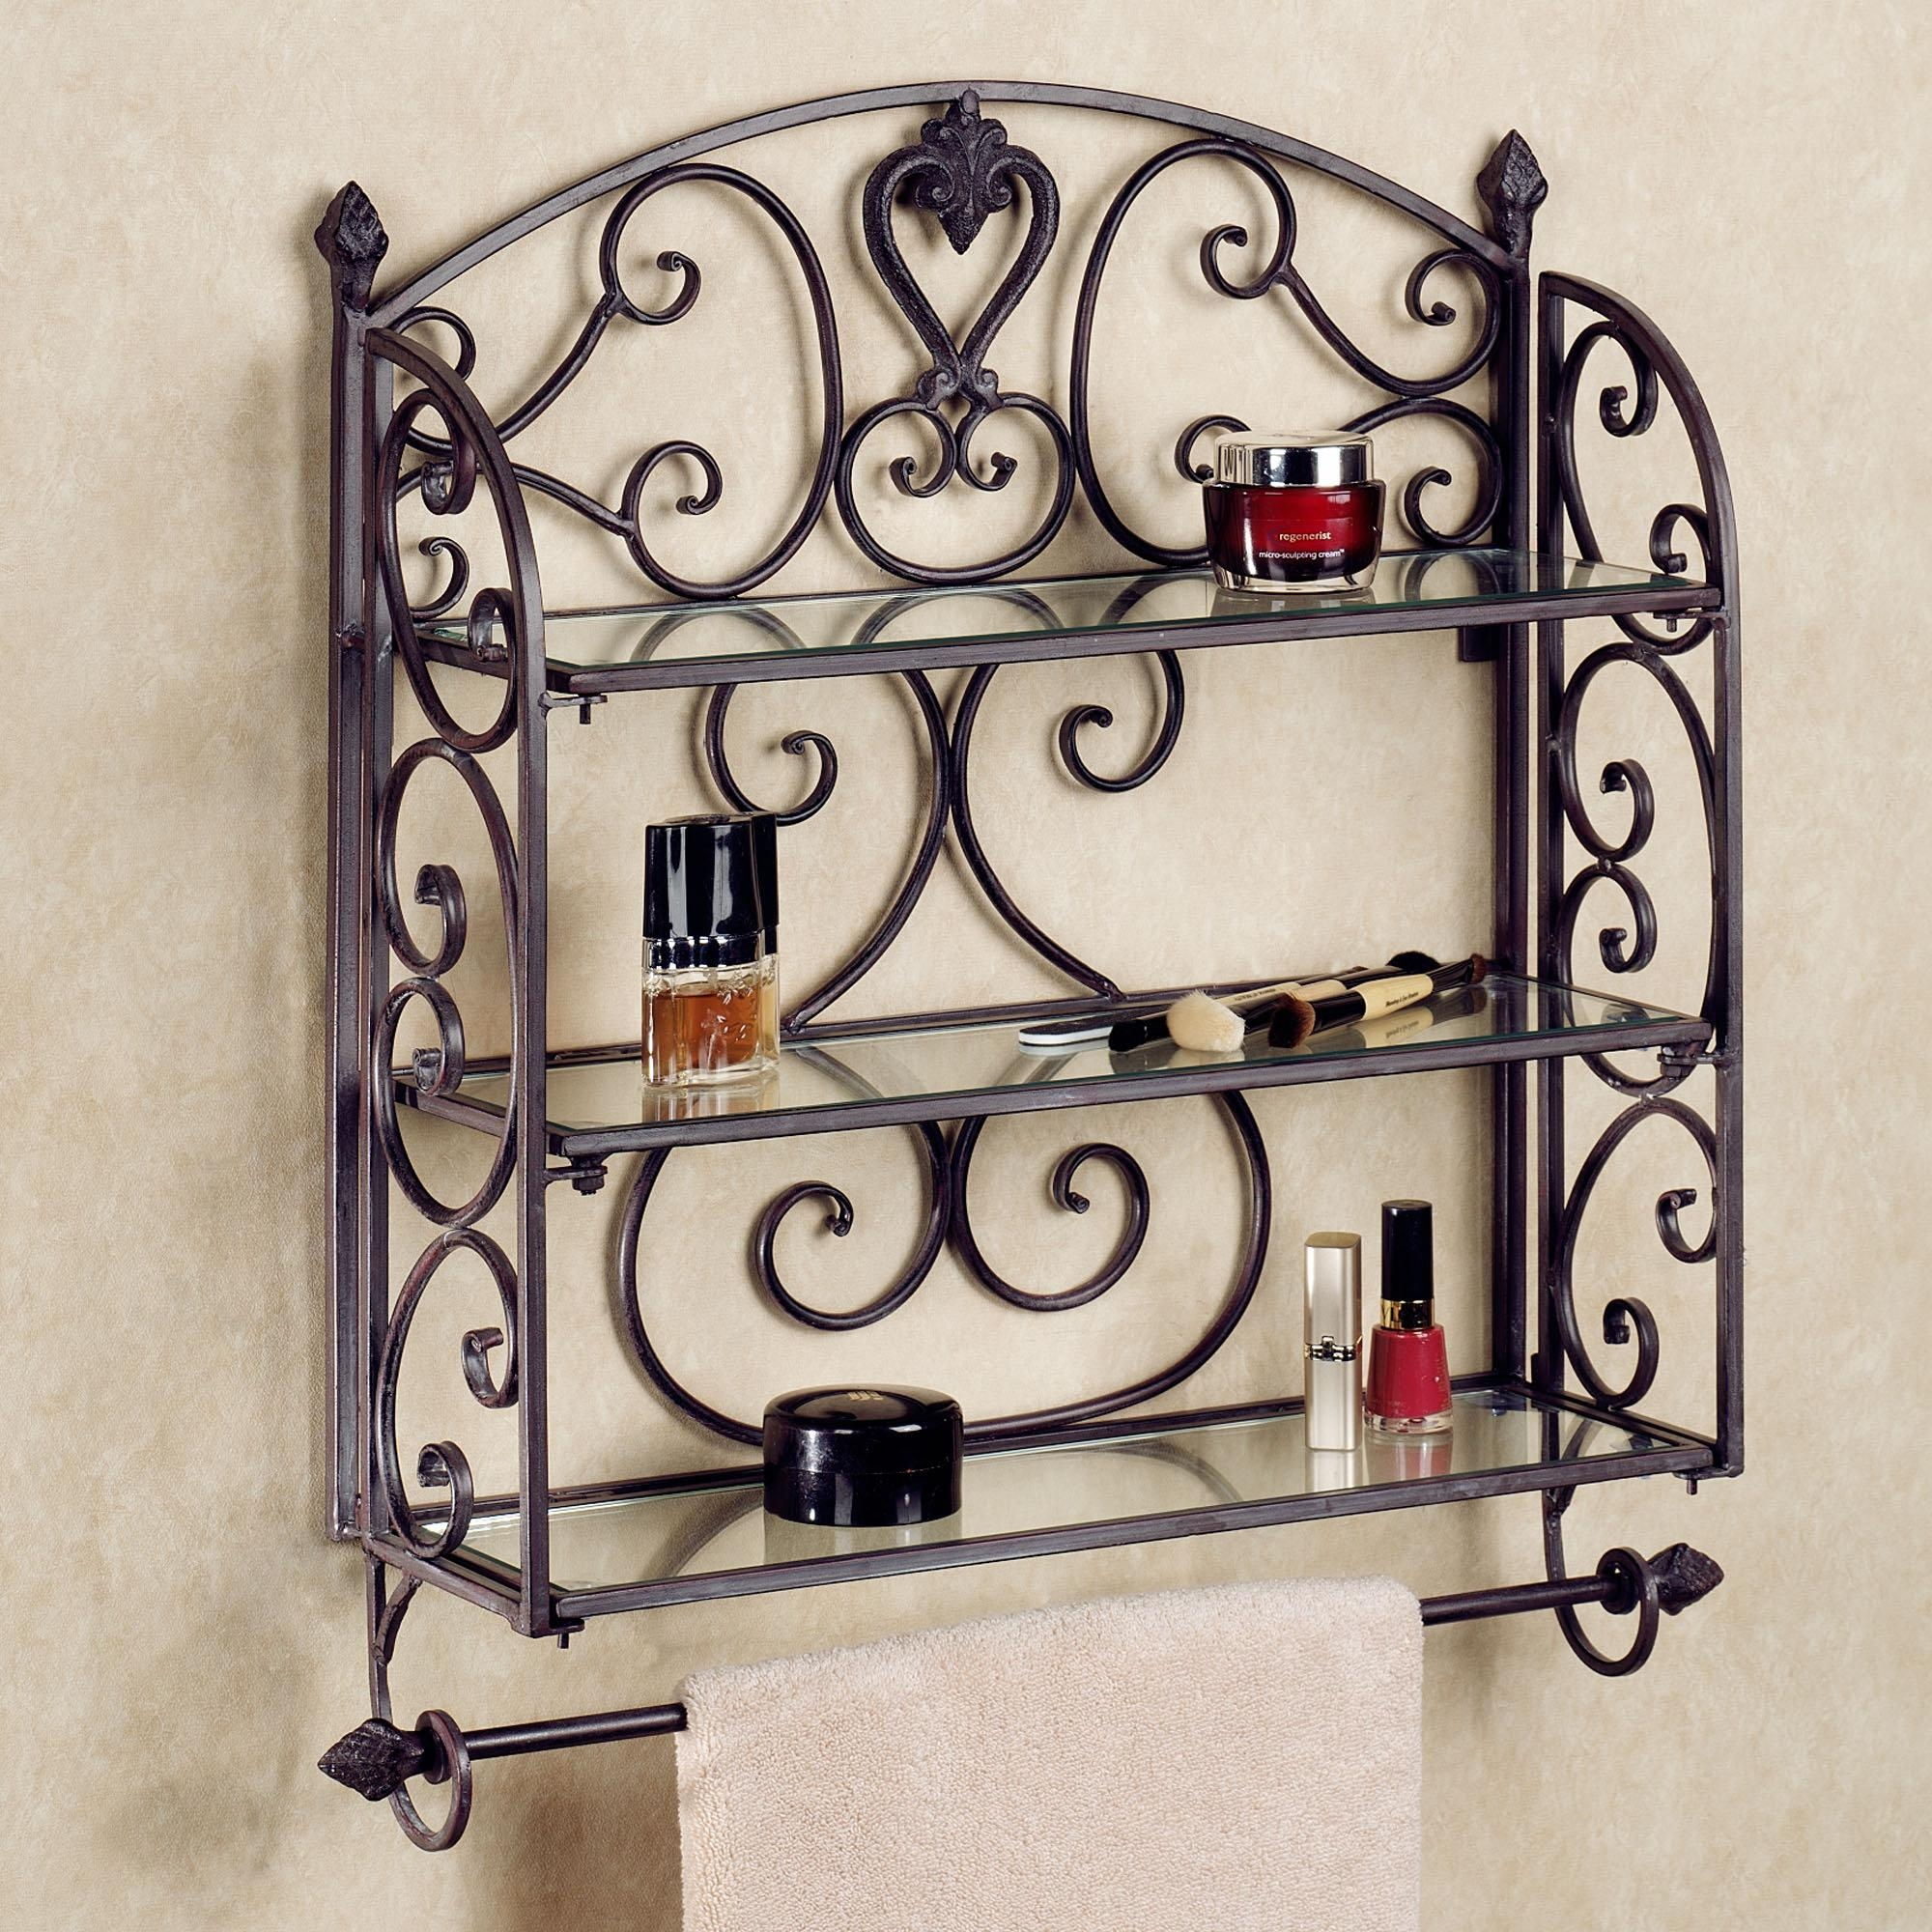 Decorative Wall Shelves For The Bookworm | The Latest Home Decor Ideas In Metal Wall Art For Bathroom (View 12 of 20)